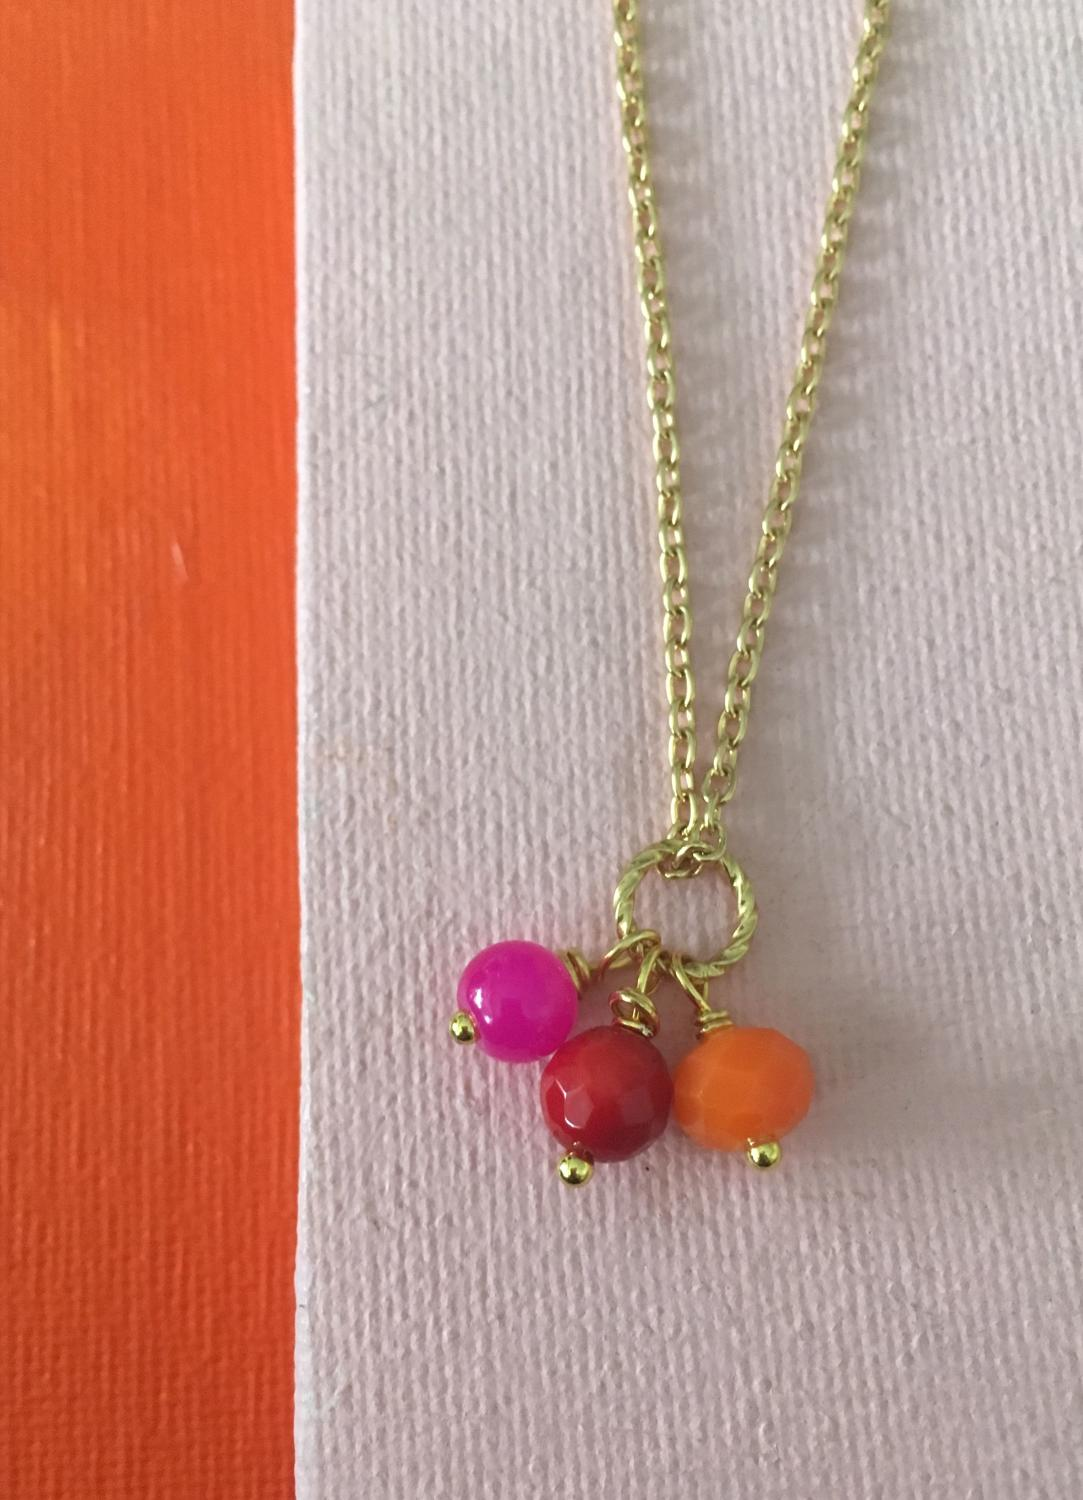 Amy necklace